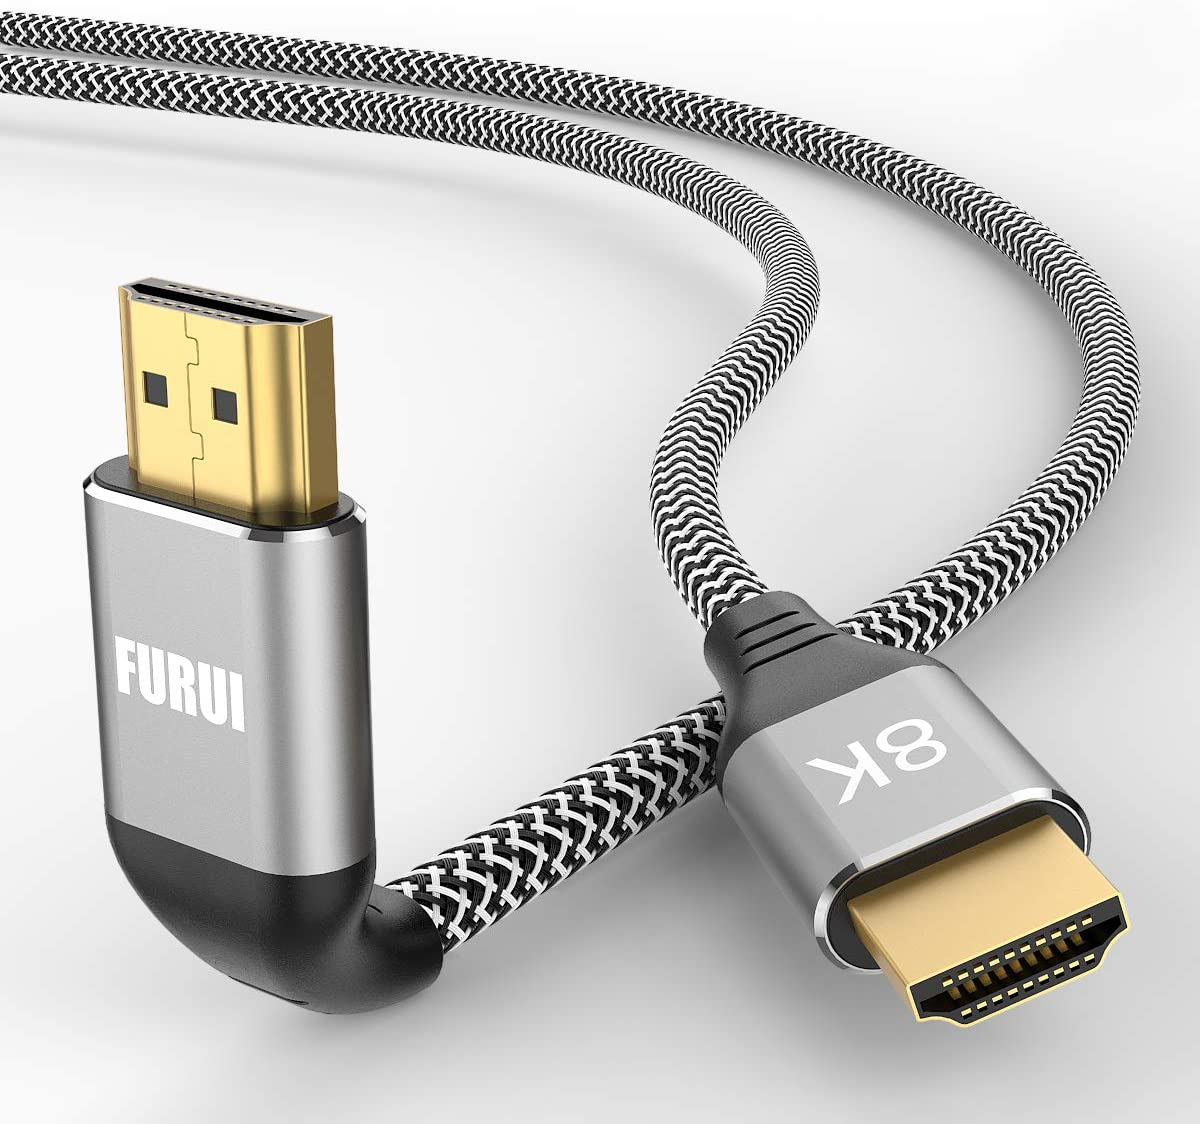 8K HDMI Cable 10ft, FURUI Nylon Braided 2.1 HDMI Cable, CL3 Rated Support Dolby Atmos, 8K@60Hz, 4K@120Hz, Ultra Speed 48Gbps, eARC, HDCP 2.2 & 2.3, Dynamic HDR Compatible with Apple TV, Roku, Xbox